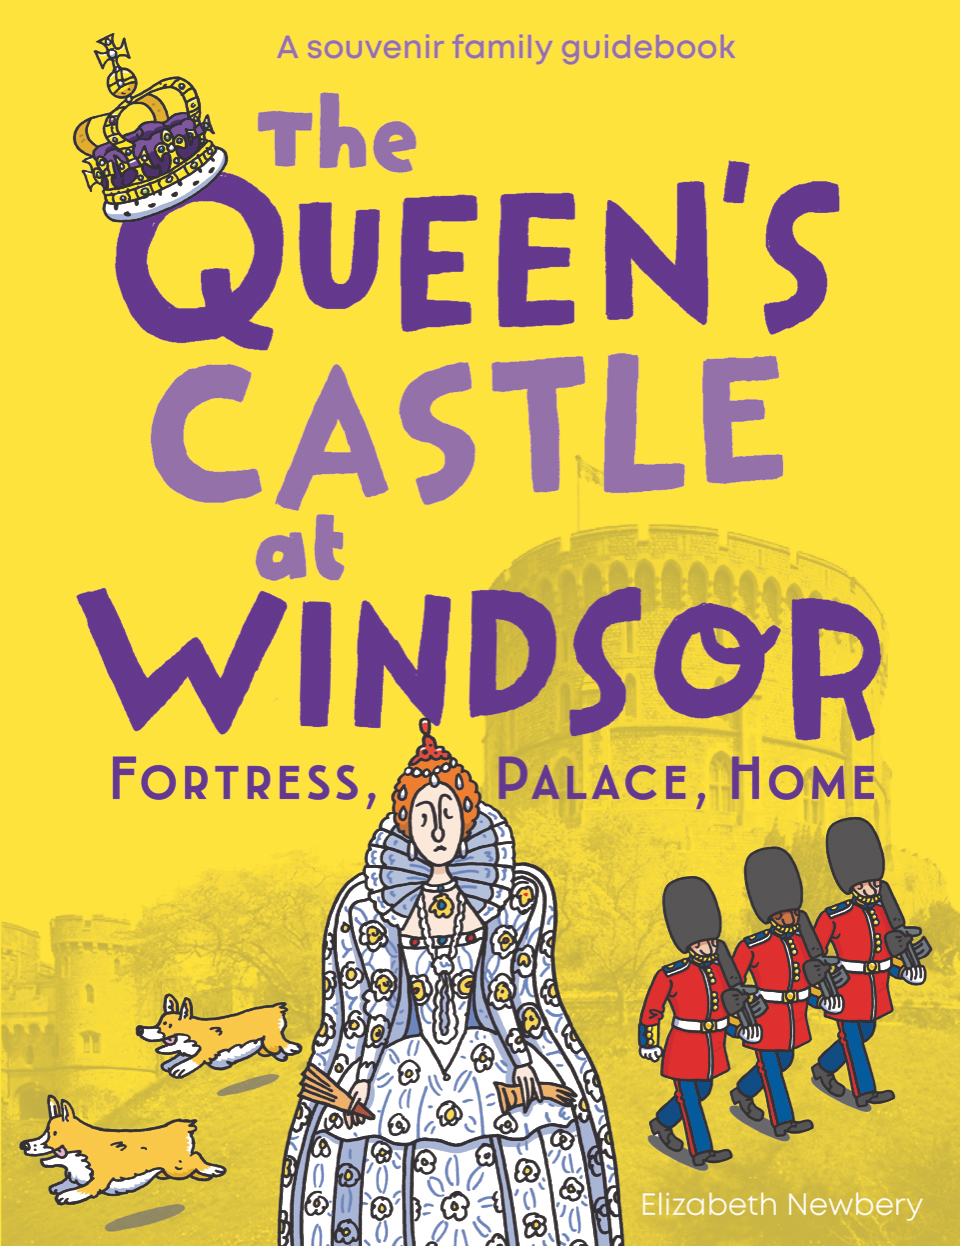 Front cover of the new Windsor Castle children's souvenir guidebook